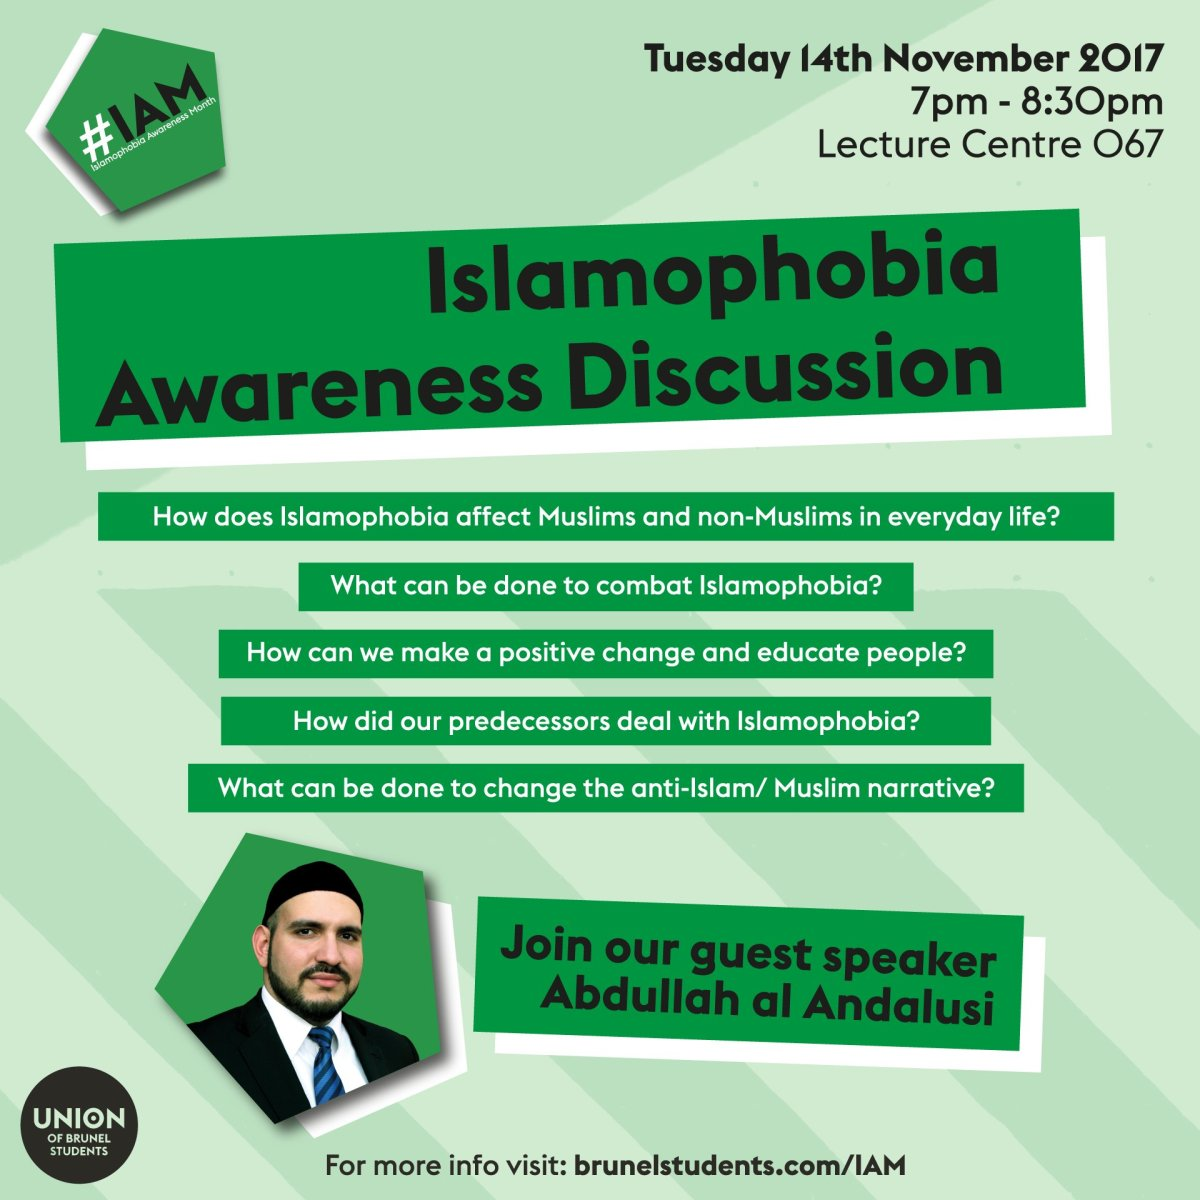 Upcoming Lecture Event: Islamophobia - A Detailed Discussion